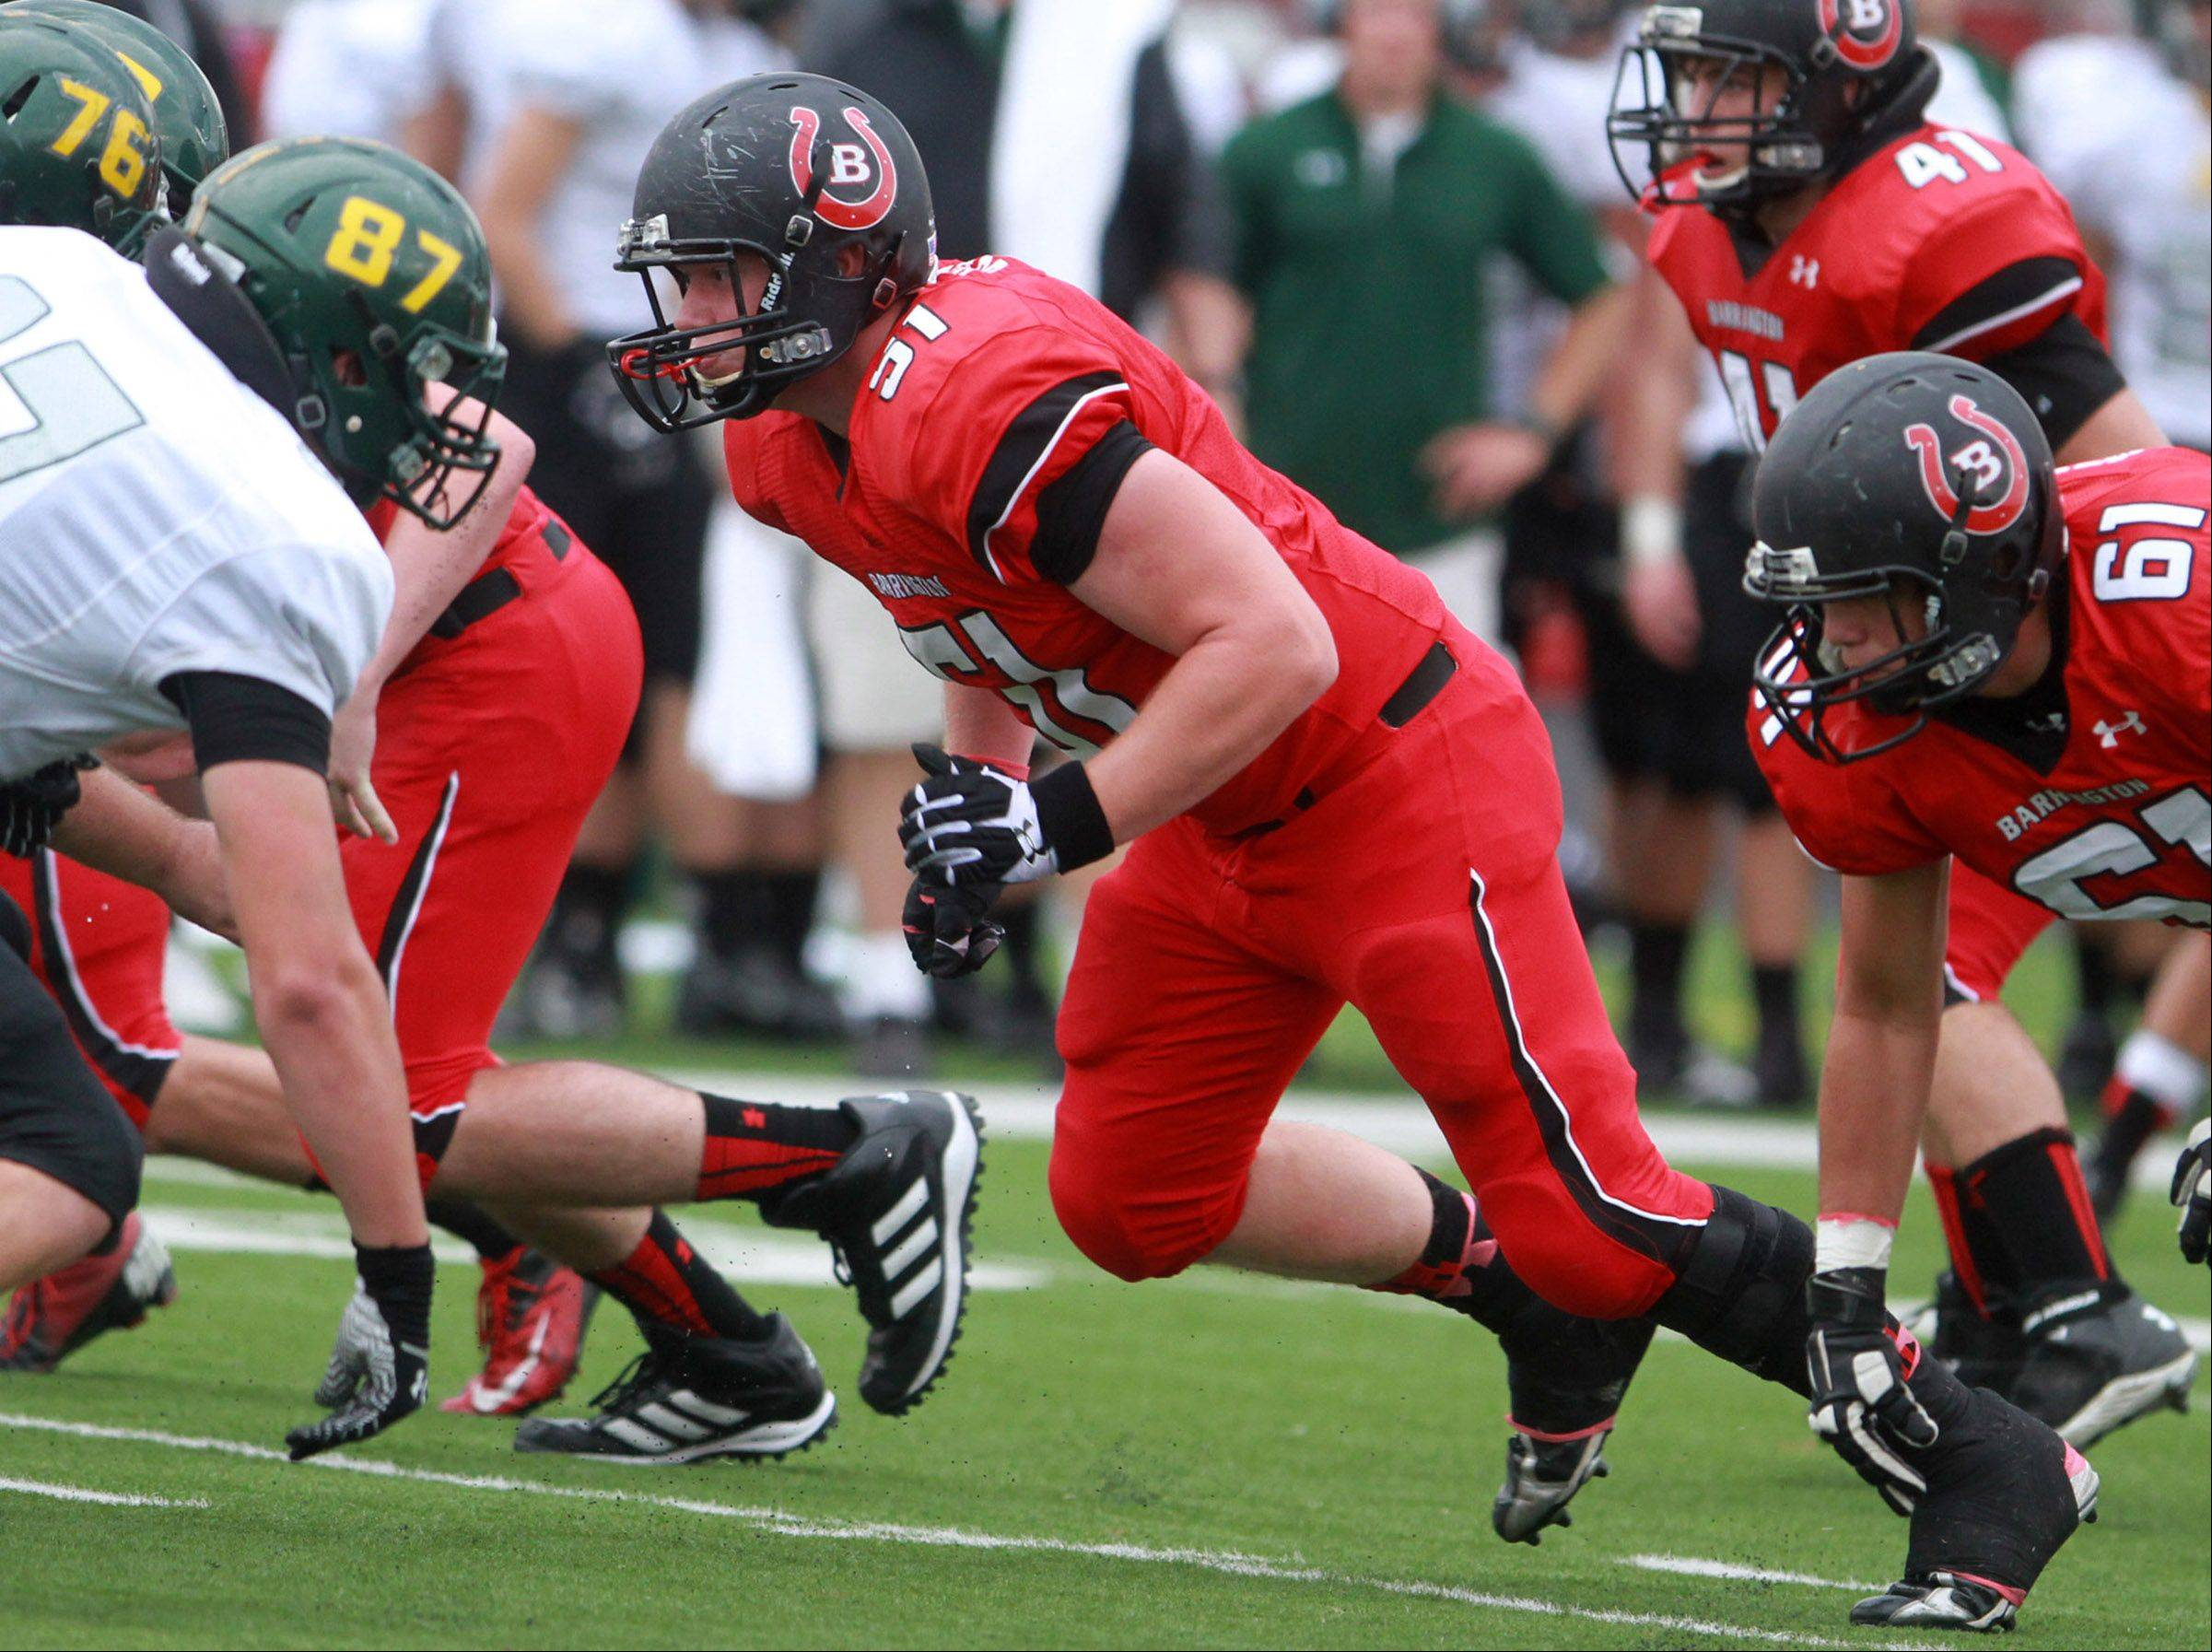 Barrington Jacob Bulandr looks for the run in front of Fremd offensive linemen at Barrington on Saturday,October 5.